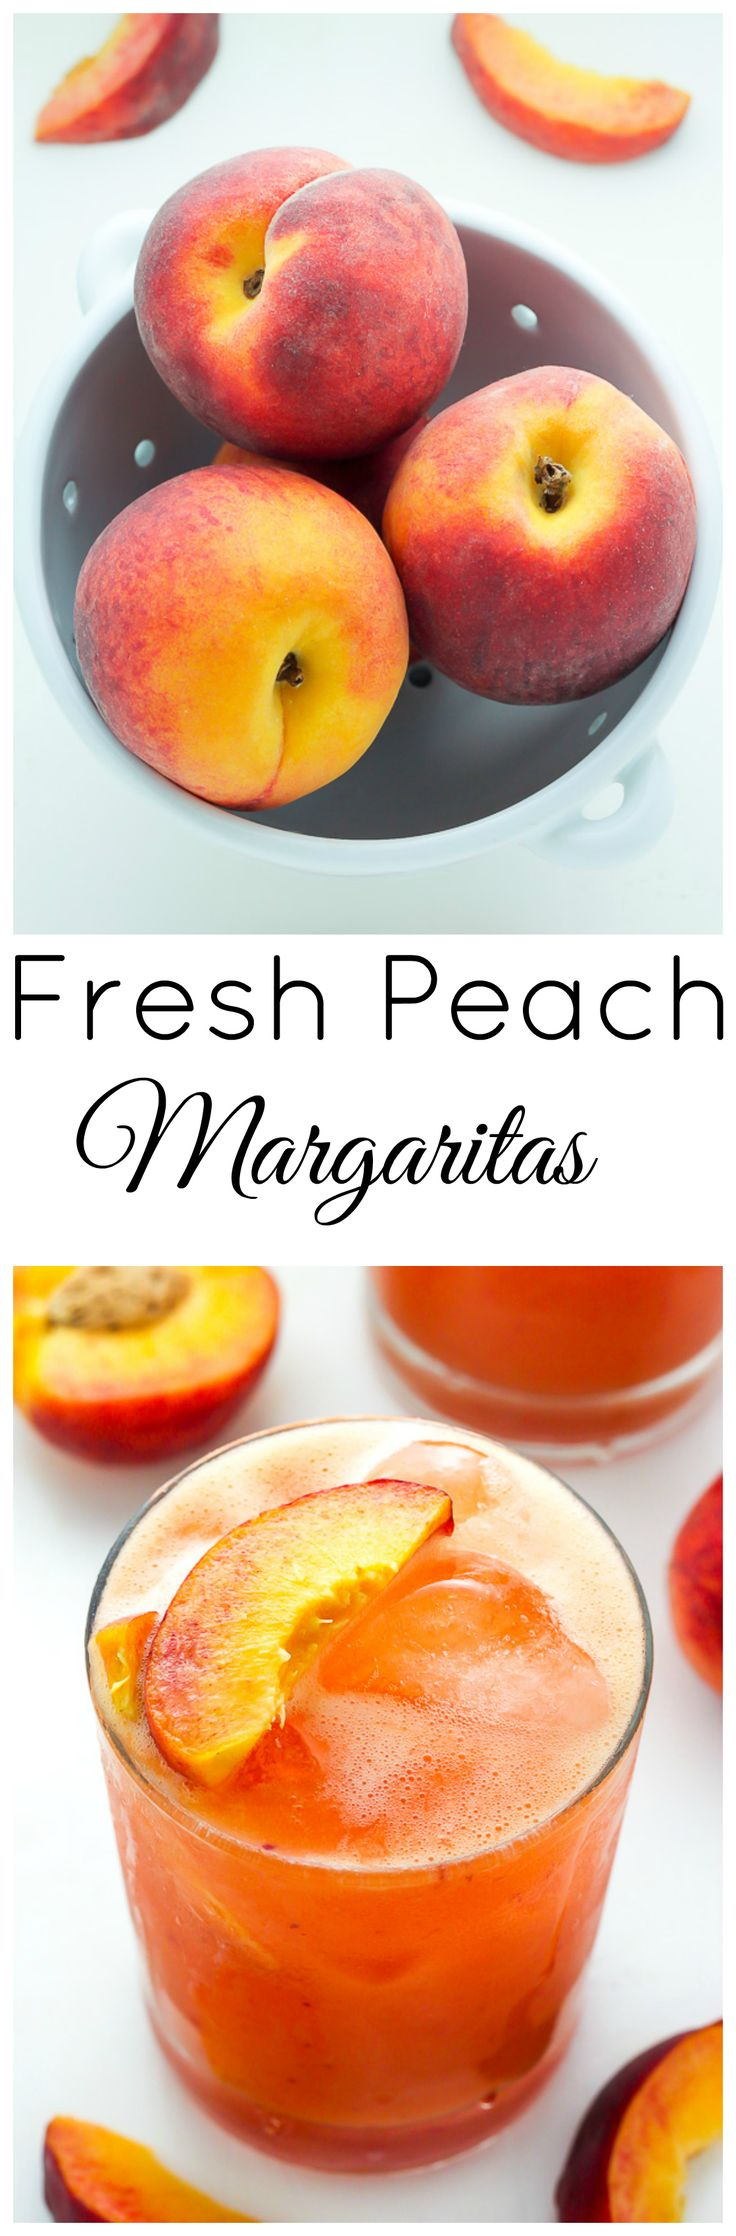 Fresh Peach Margaritas - these super refreshing cocktails can be ready in 10 minutes! Treat yourself to a batch asap.